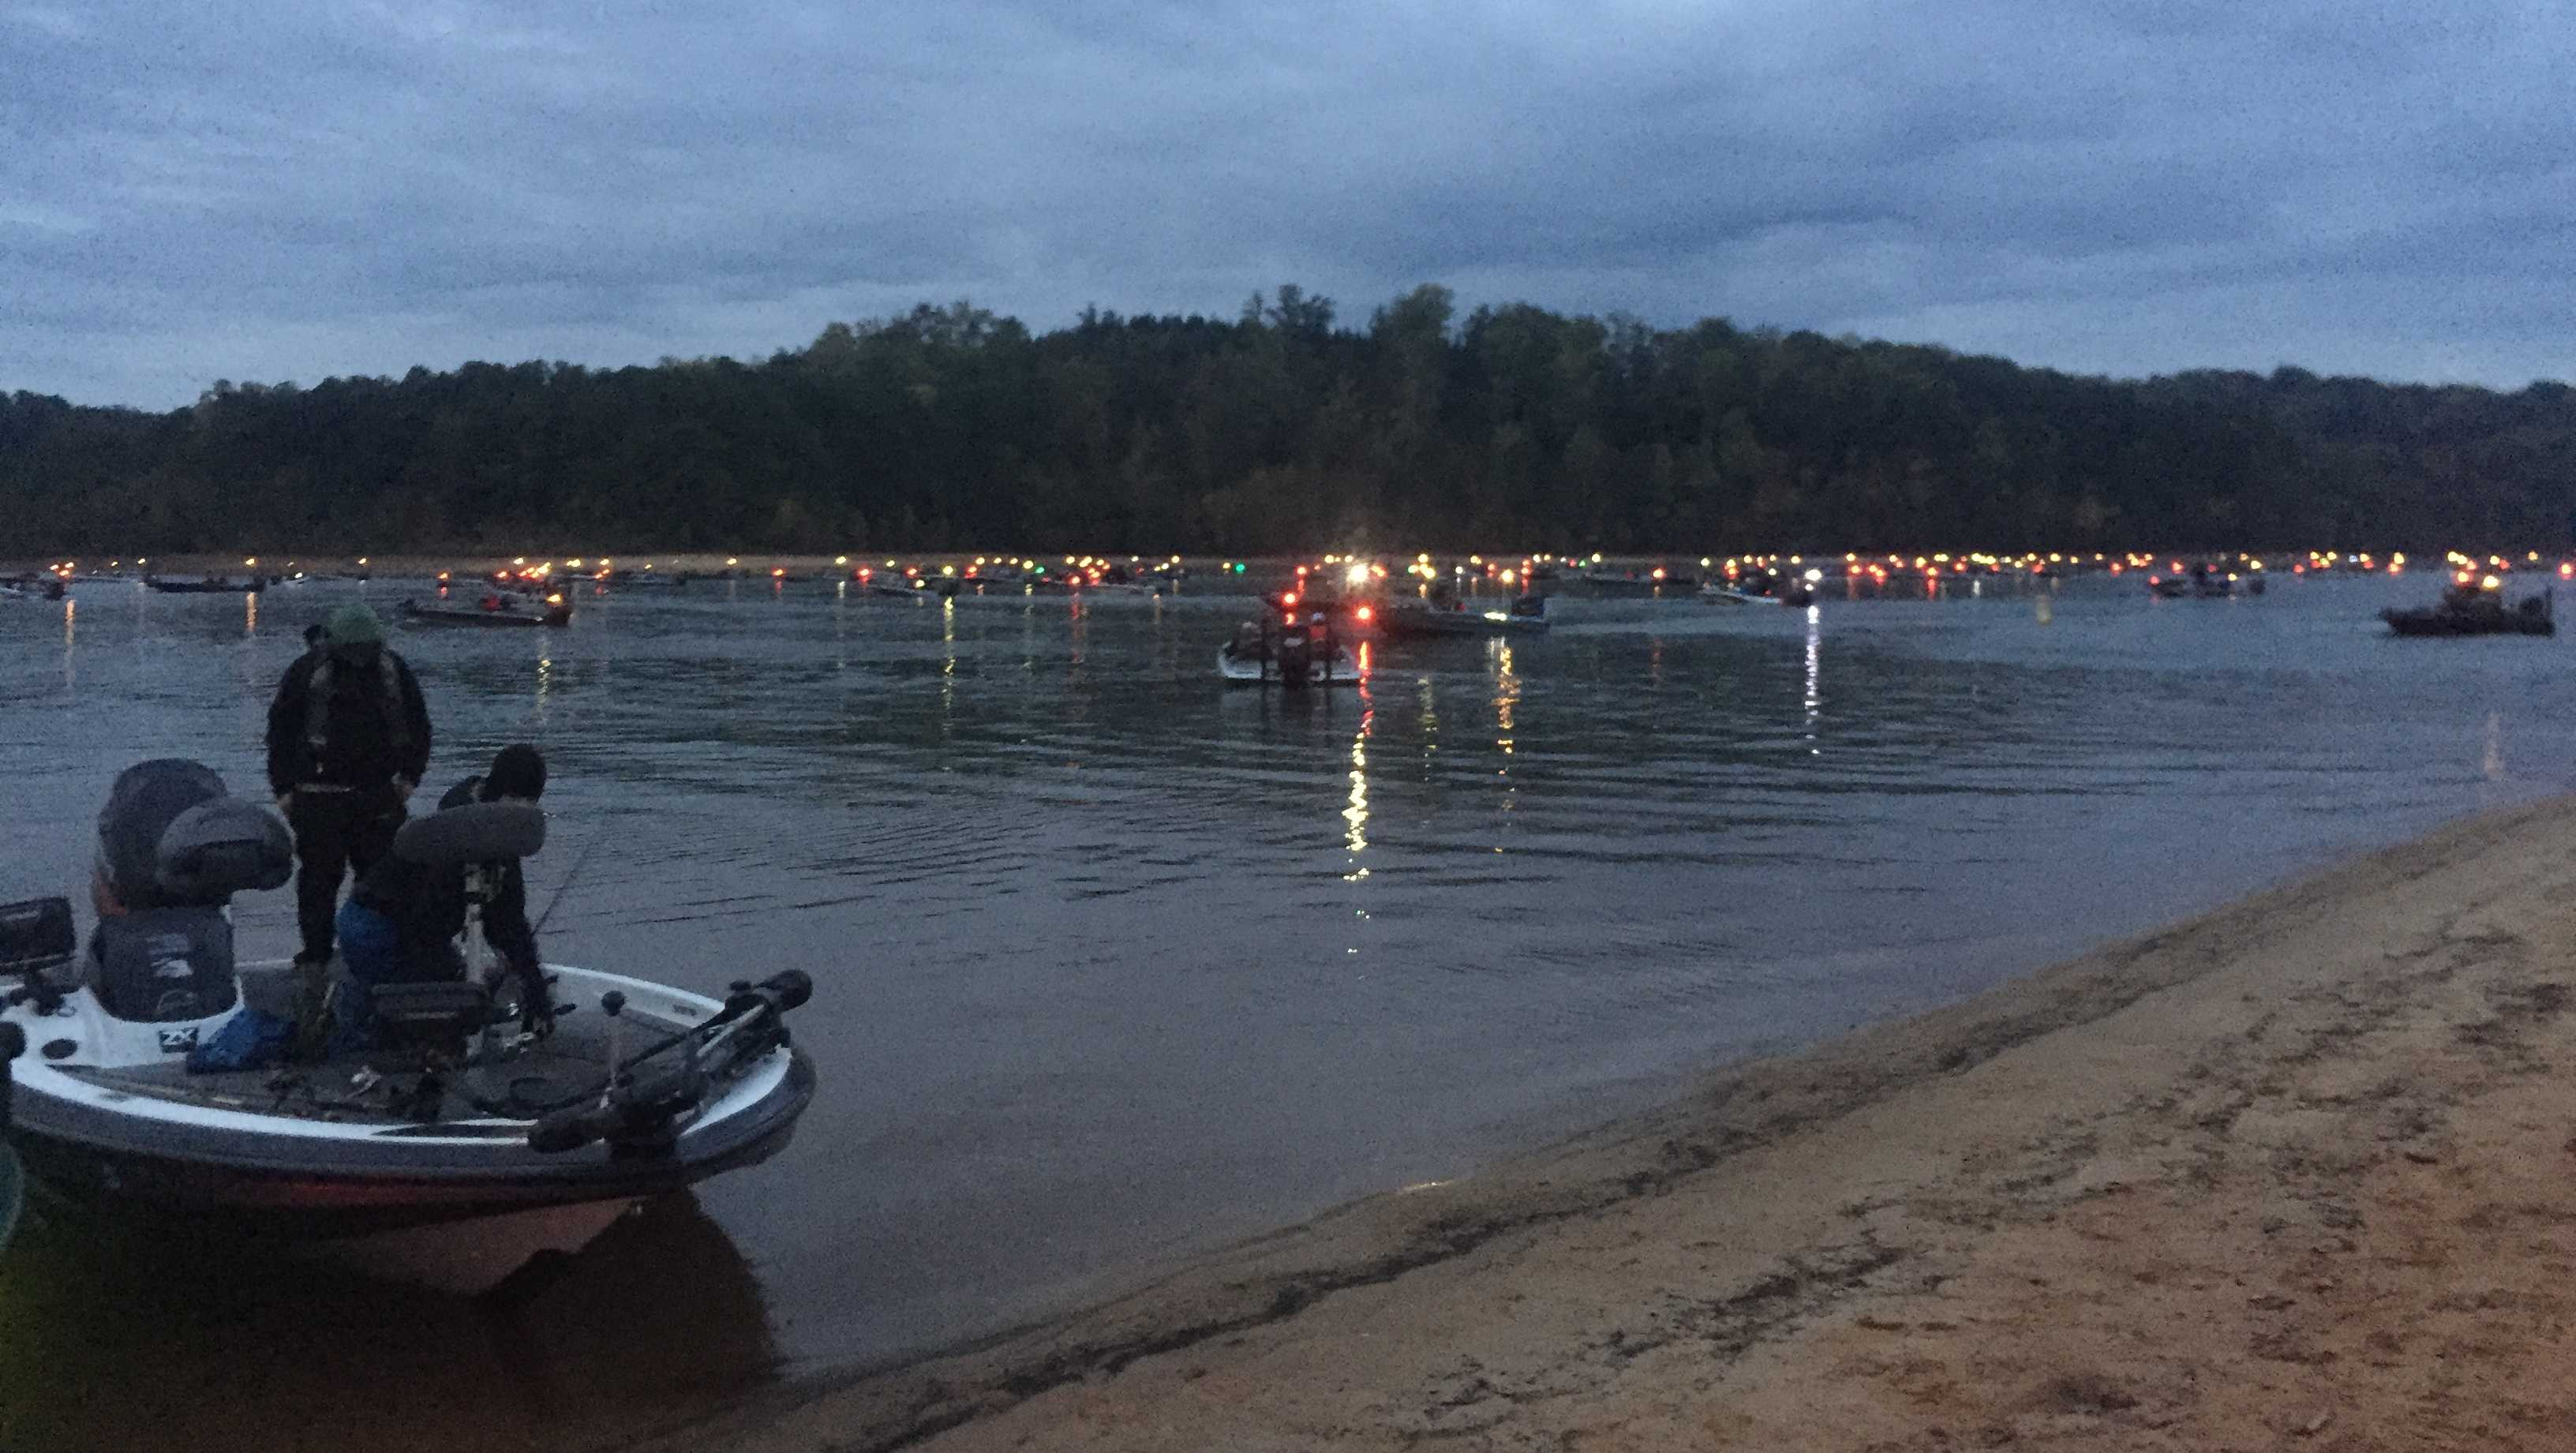 Bass fishing tournament on Lake Hartwell